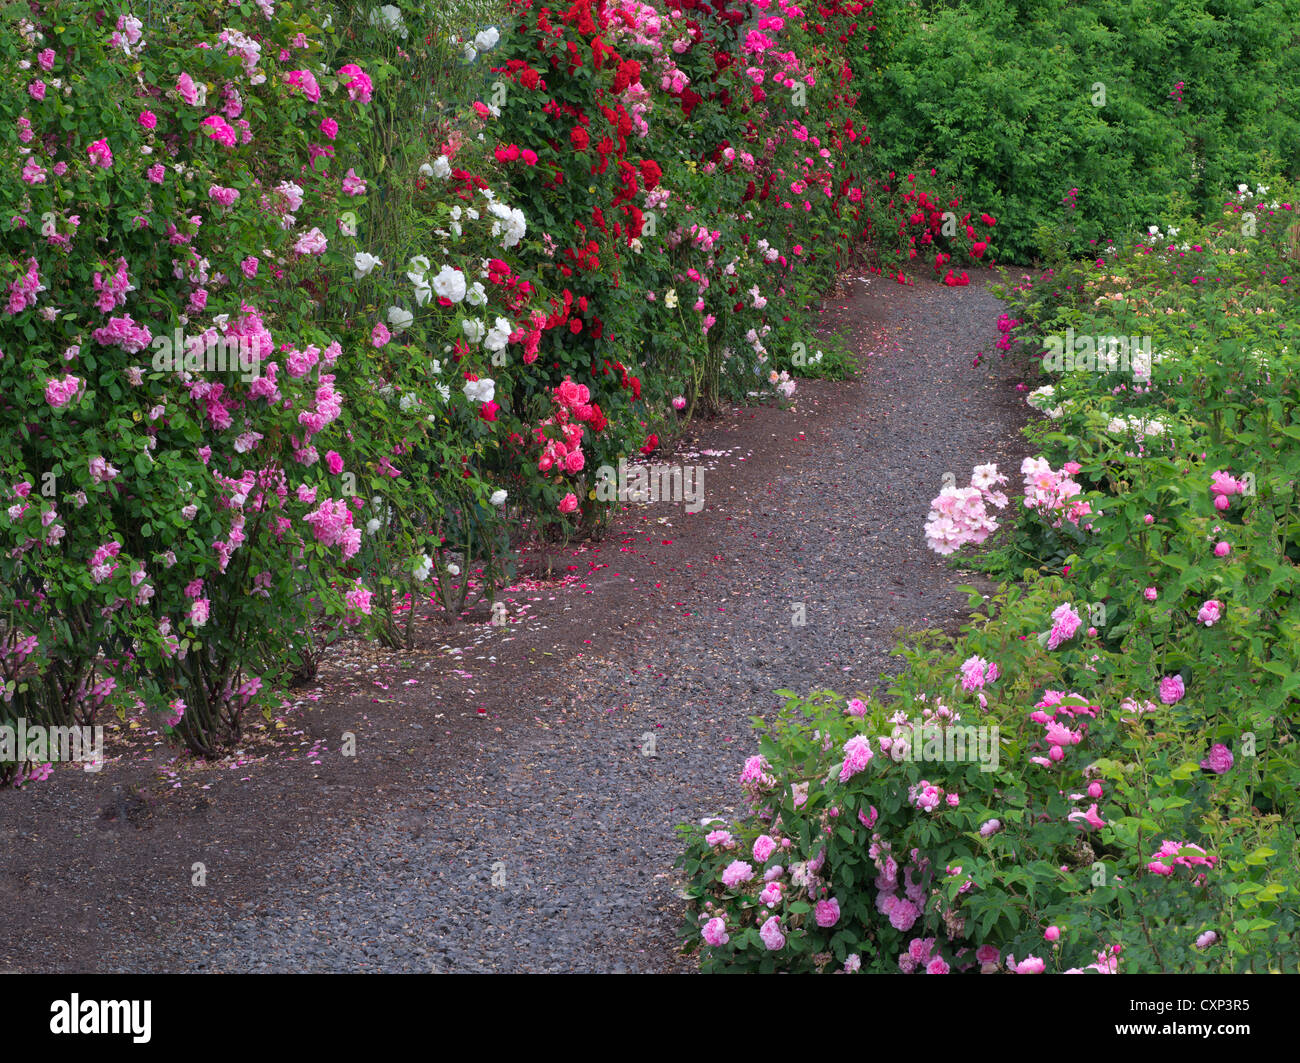 Path through roses. Heirloom Gardens. St. Paul, Oregon - Stock Image